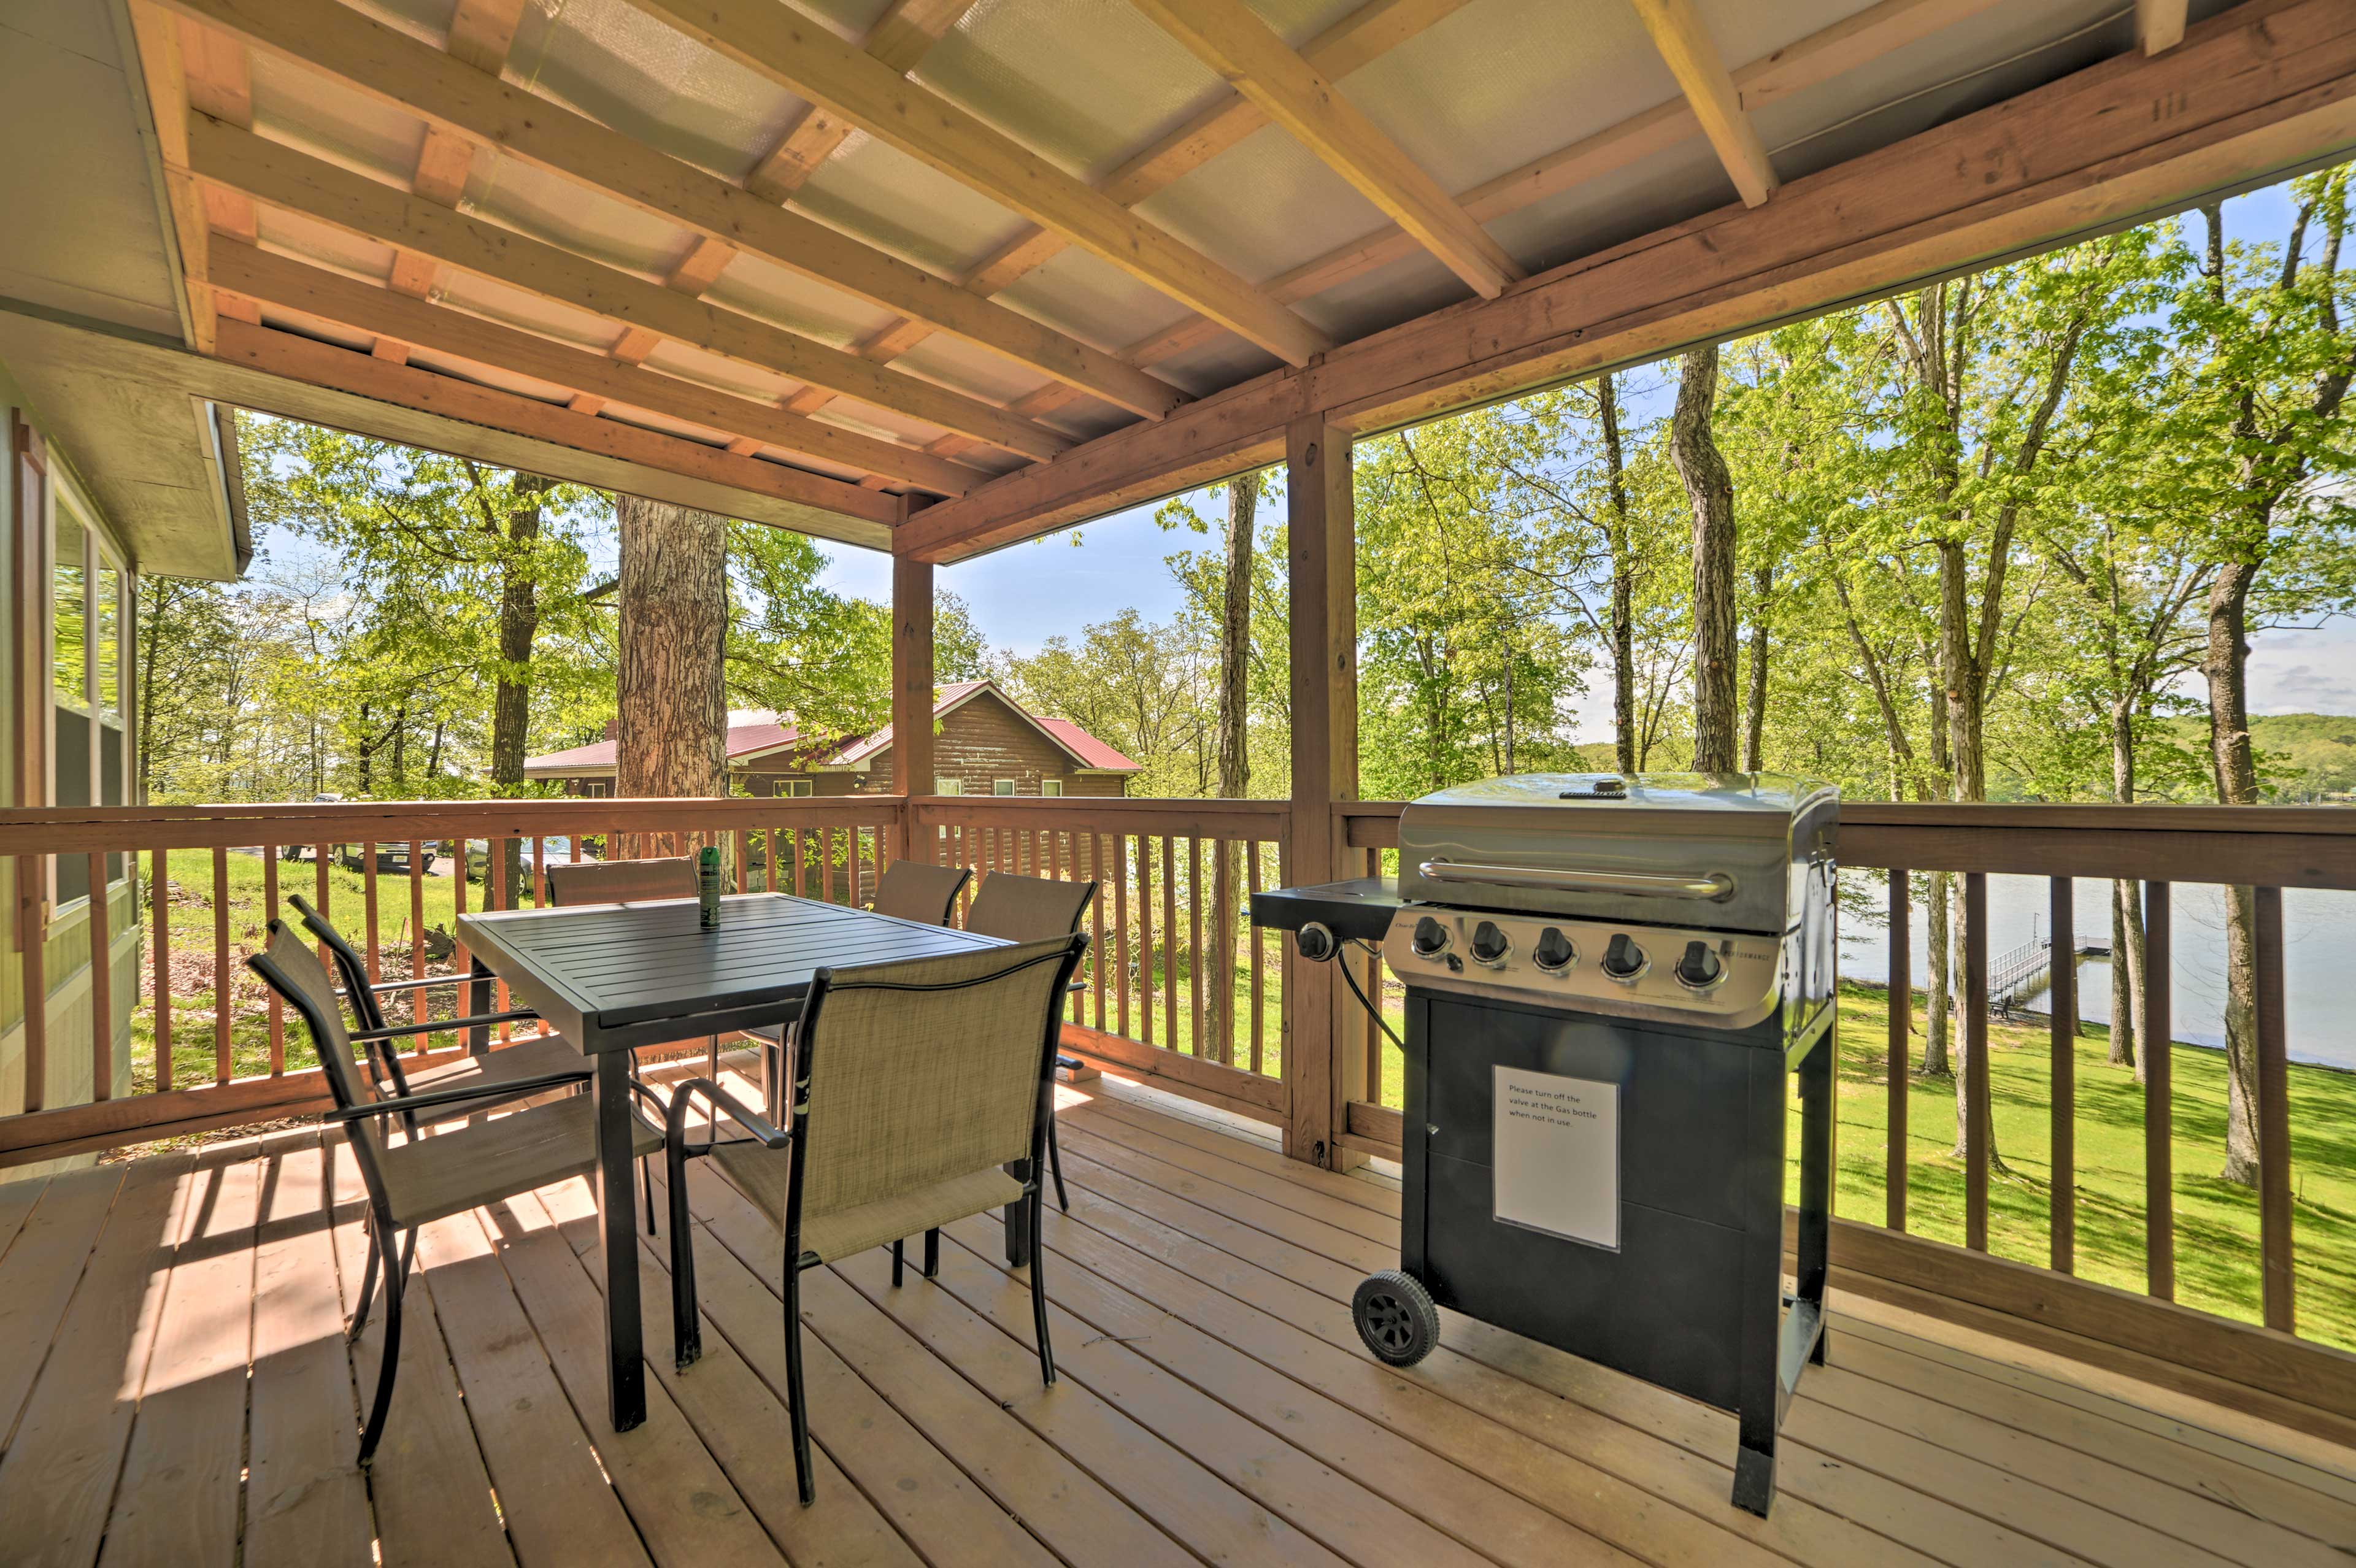 Have a cookout with the gas grill.